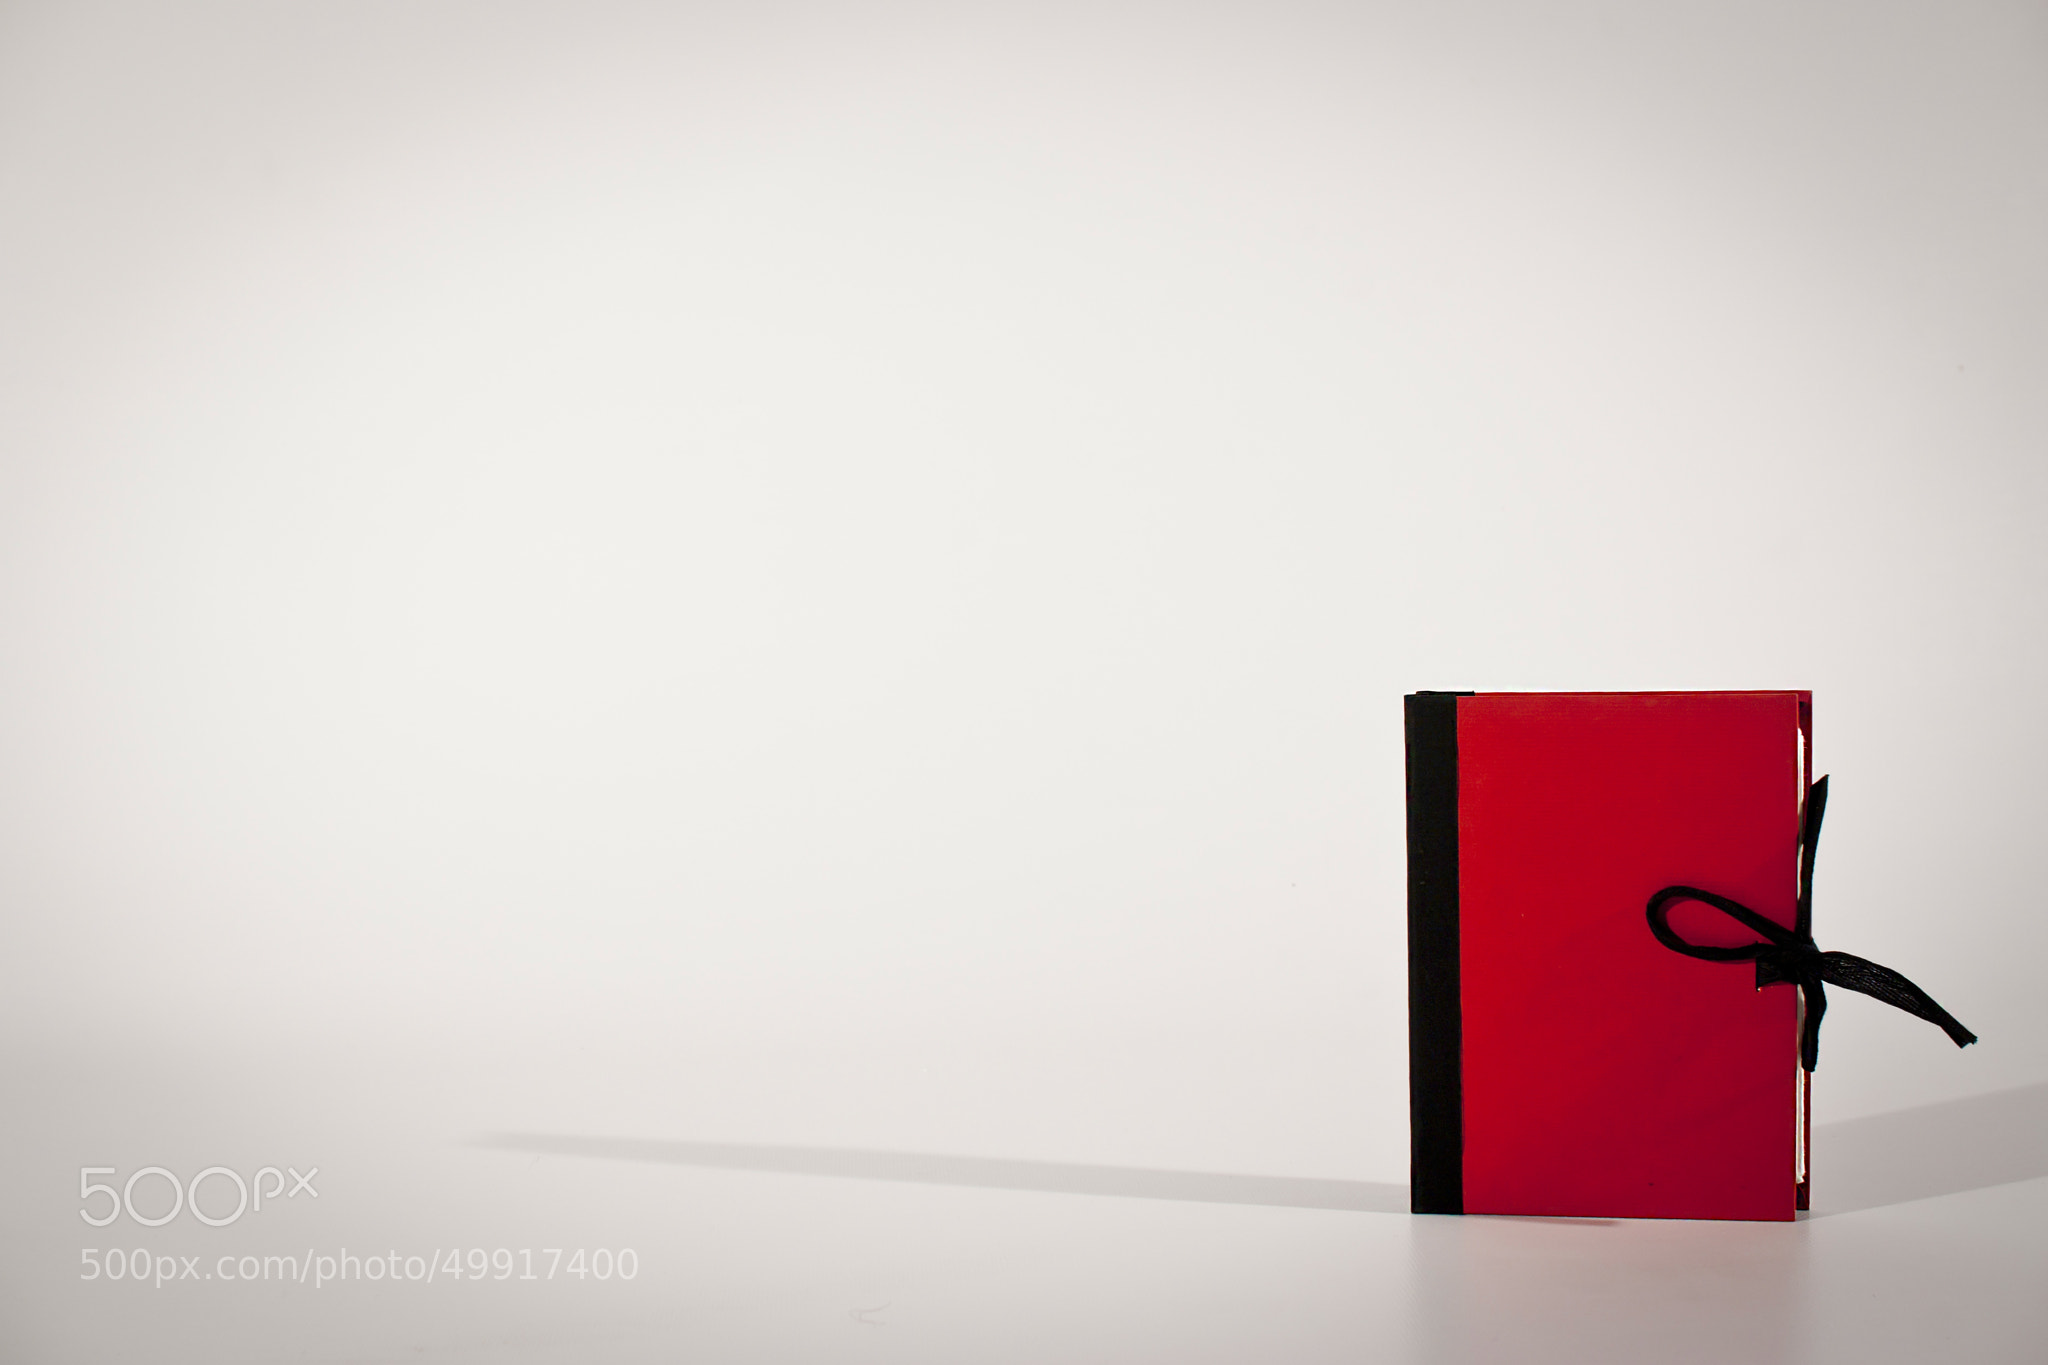 Photograph The Red Book by Stanislav Novak on 500px